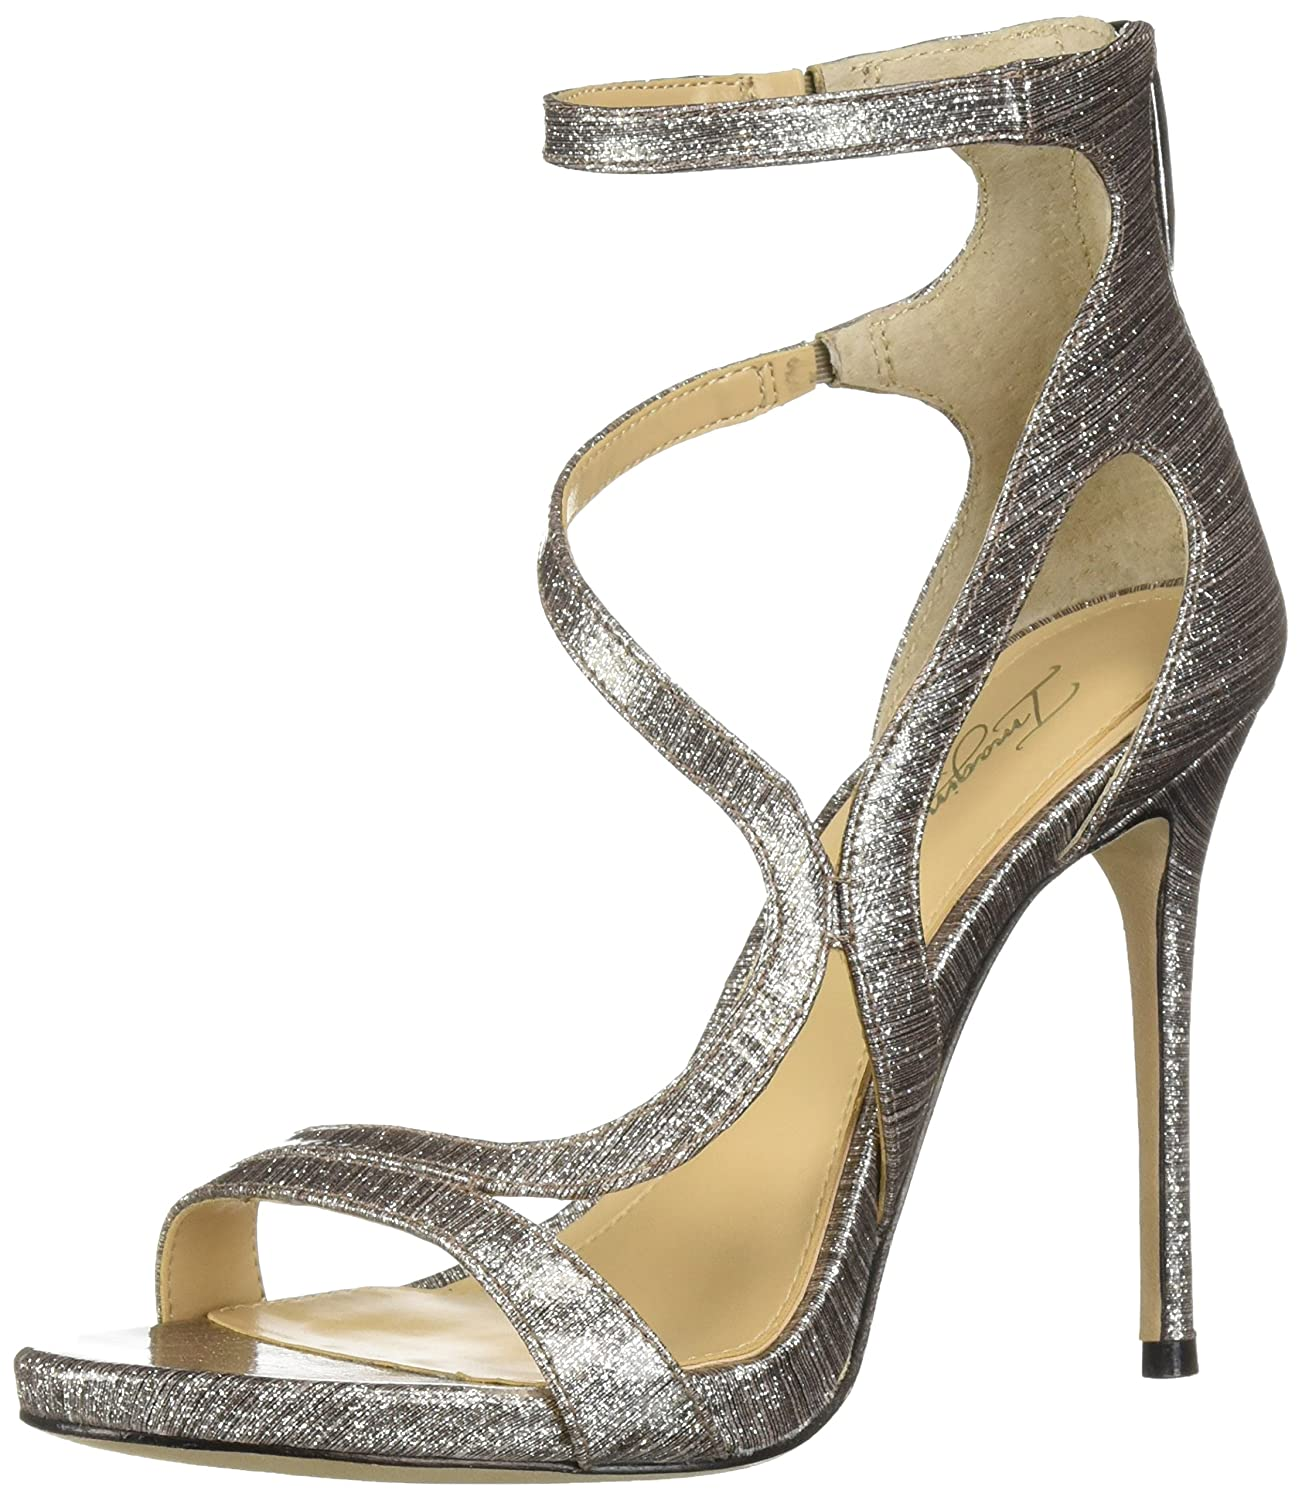 Platinum Imagine Vince Camuto Womens Demet Heeled Sandal